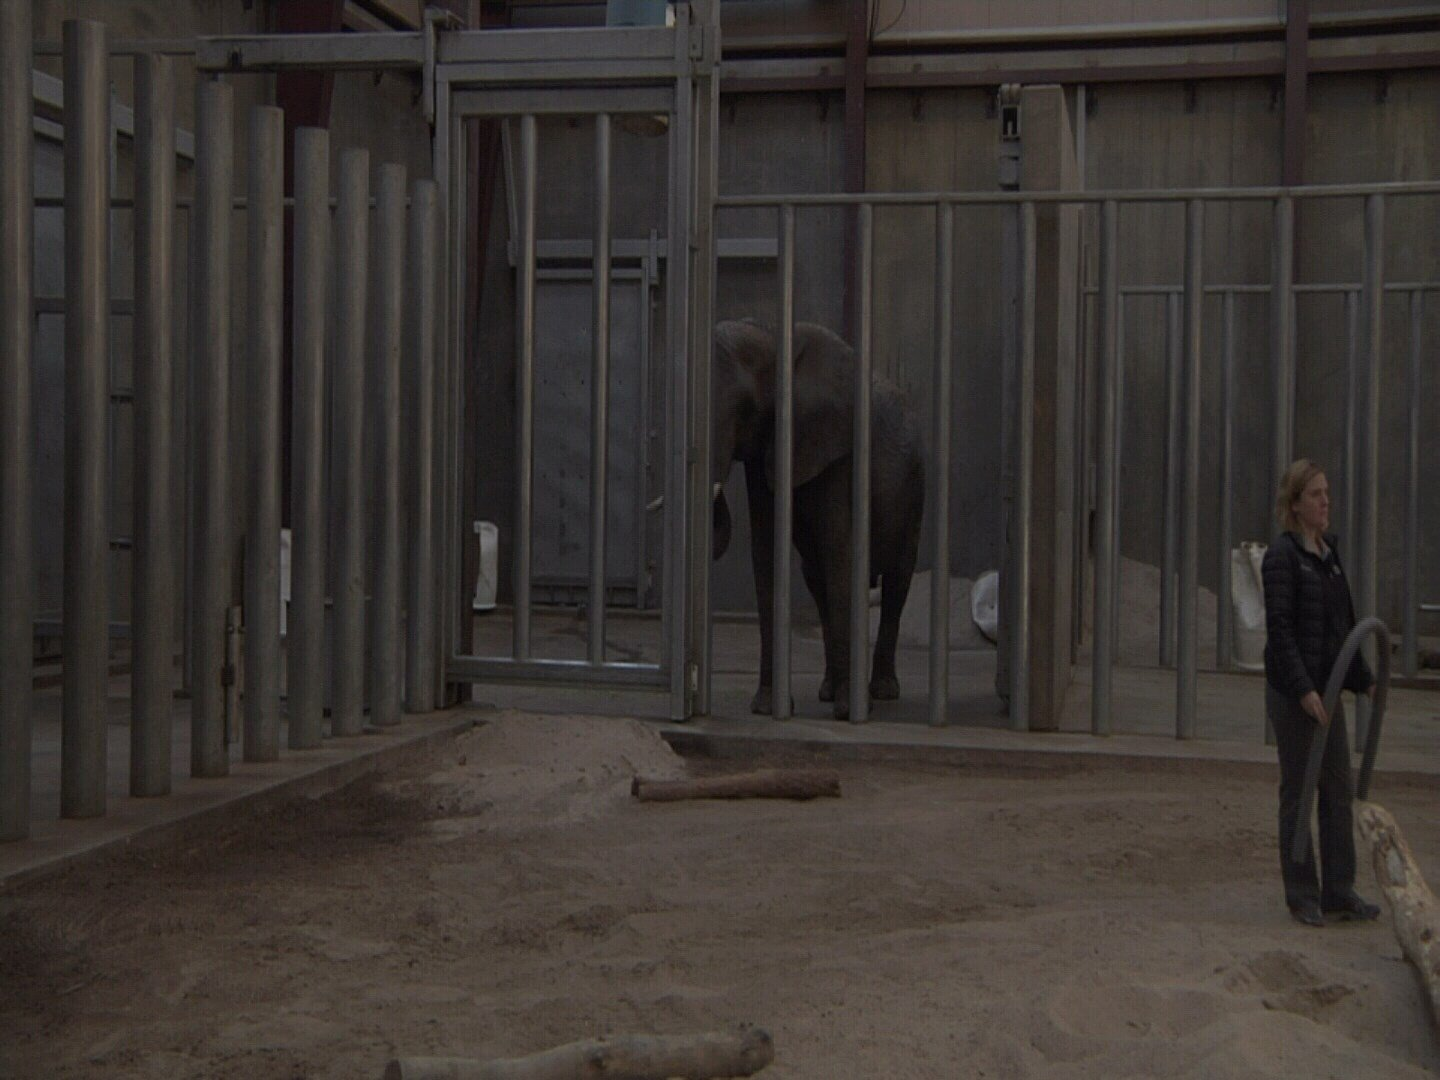 Staff at Cheyenne Mountain Zoo conduct elephant rescue training